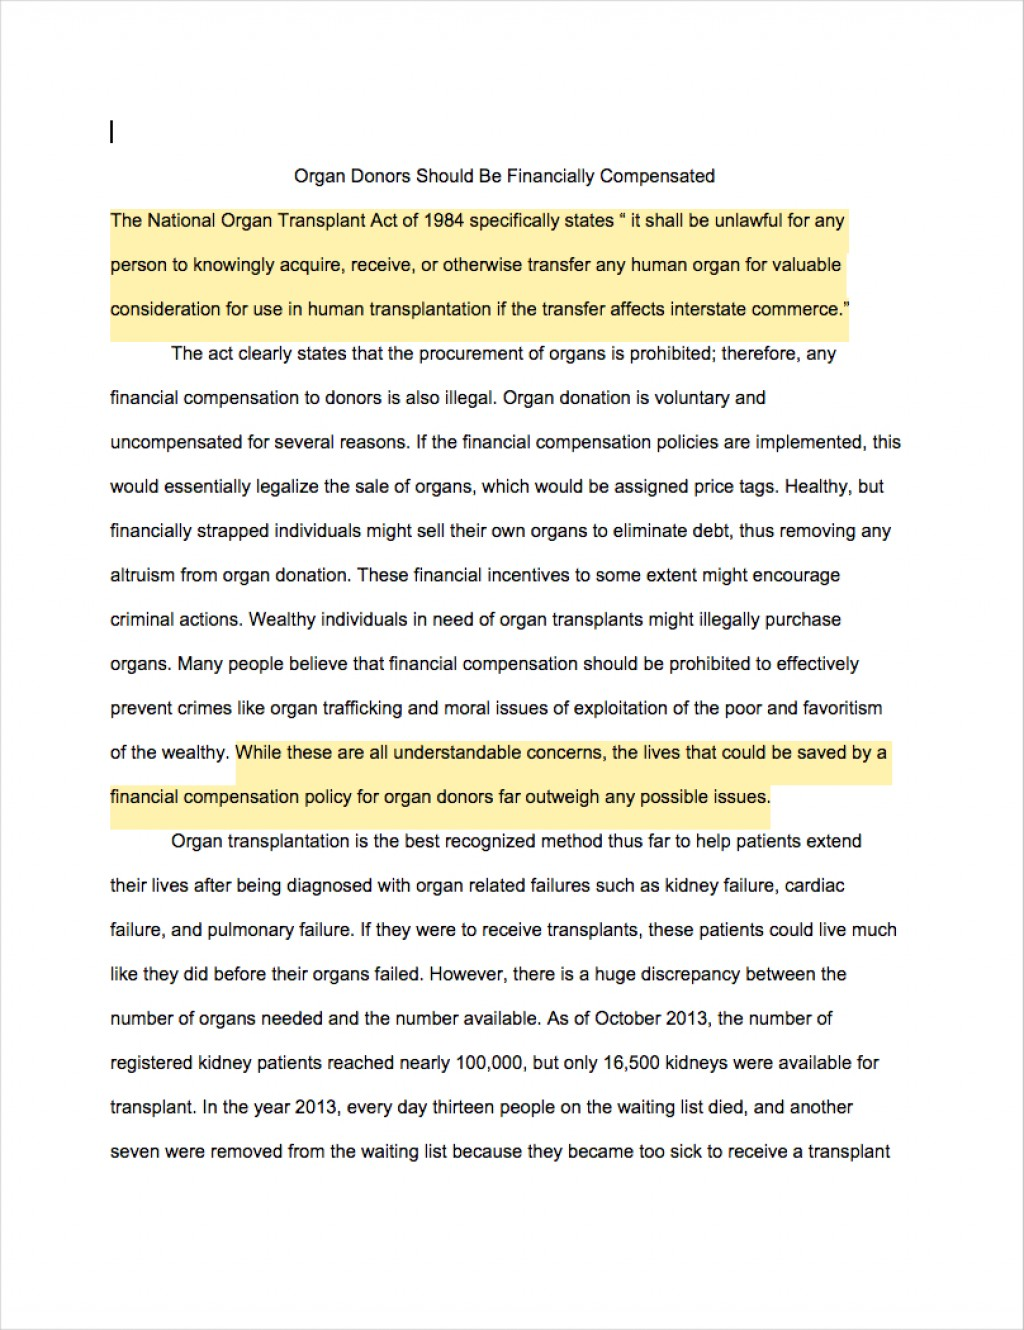 003 Argumentation Essay Example Argumentative Examples Organ Donors Should Financially Compensated Dreaded Conclusion Sentence Starters Introduction Format 9th Grade Large